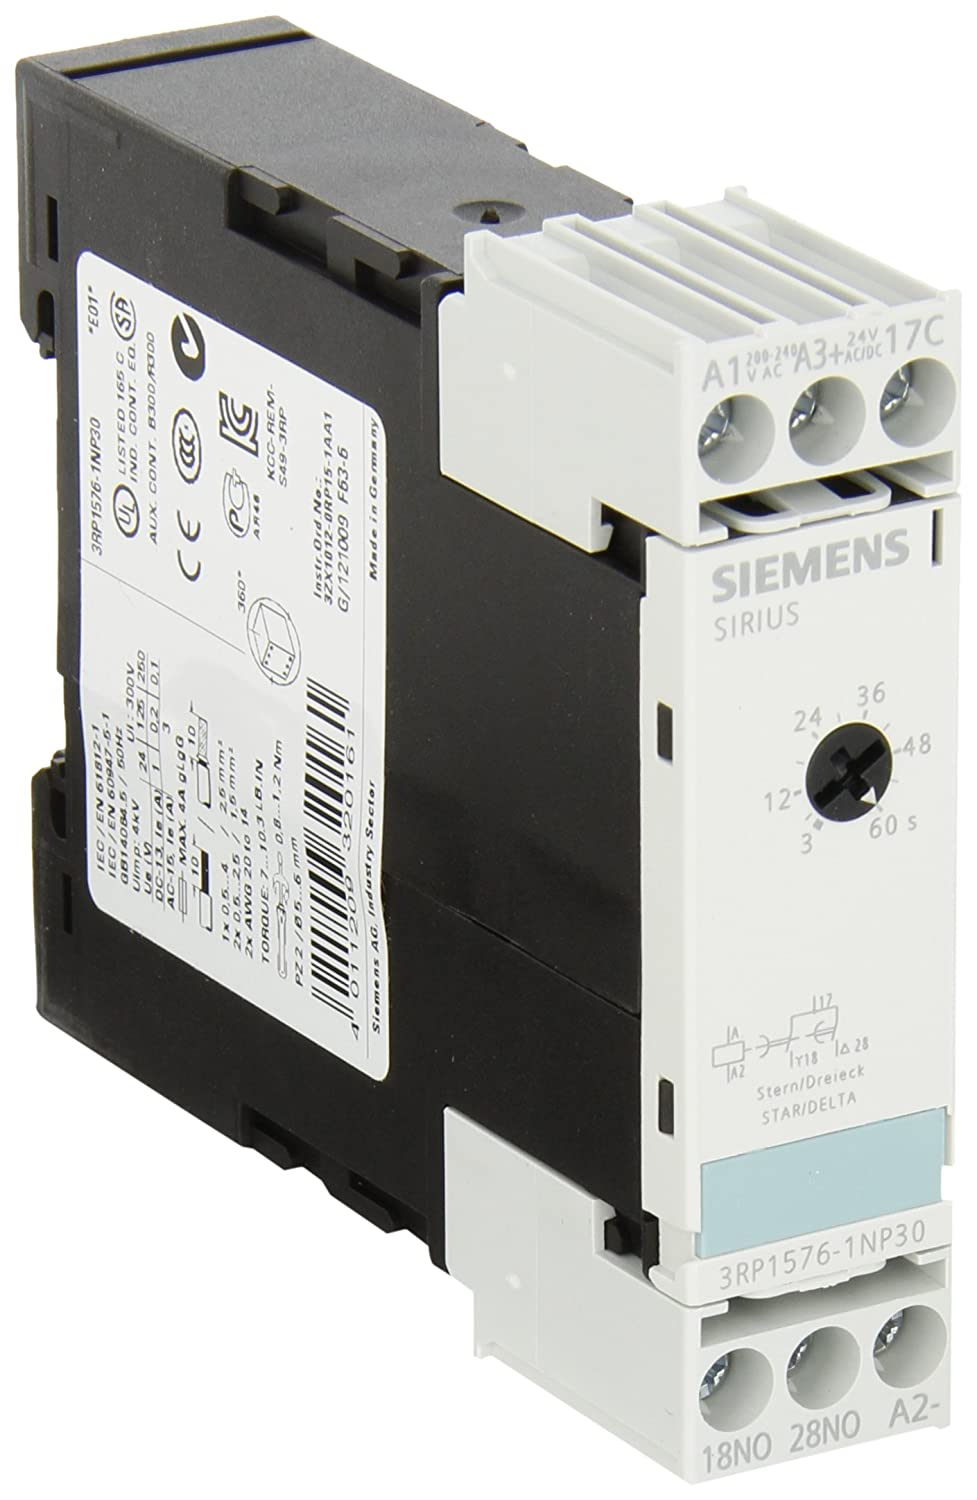 Siemens 3rp1576 1np30 Solid State Time Relay Industrial Housing Harga No Nc 225mm Screw Terminal Star Delta Function 1 Contact Elements